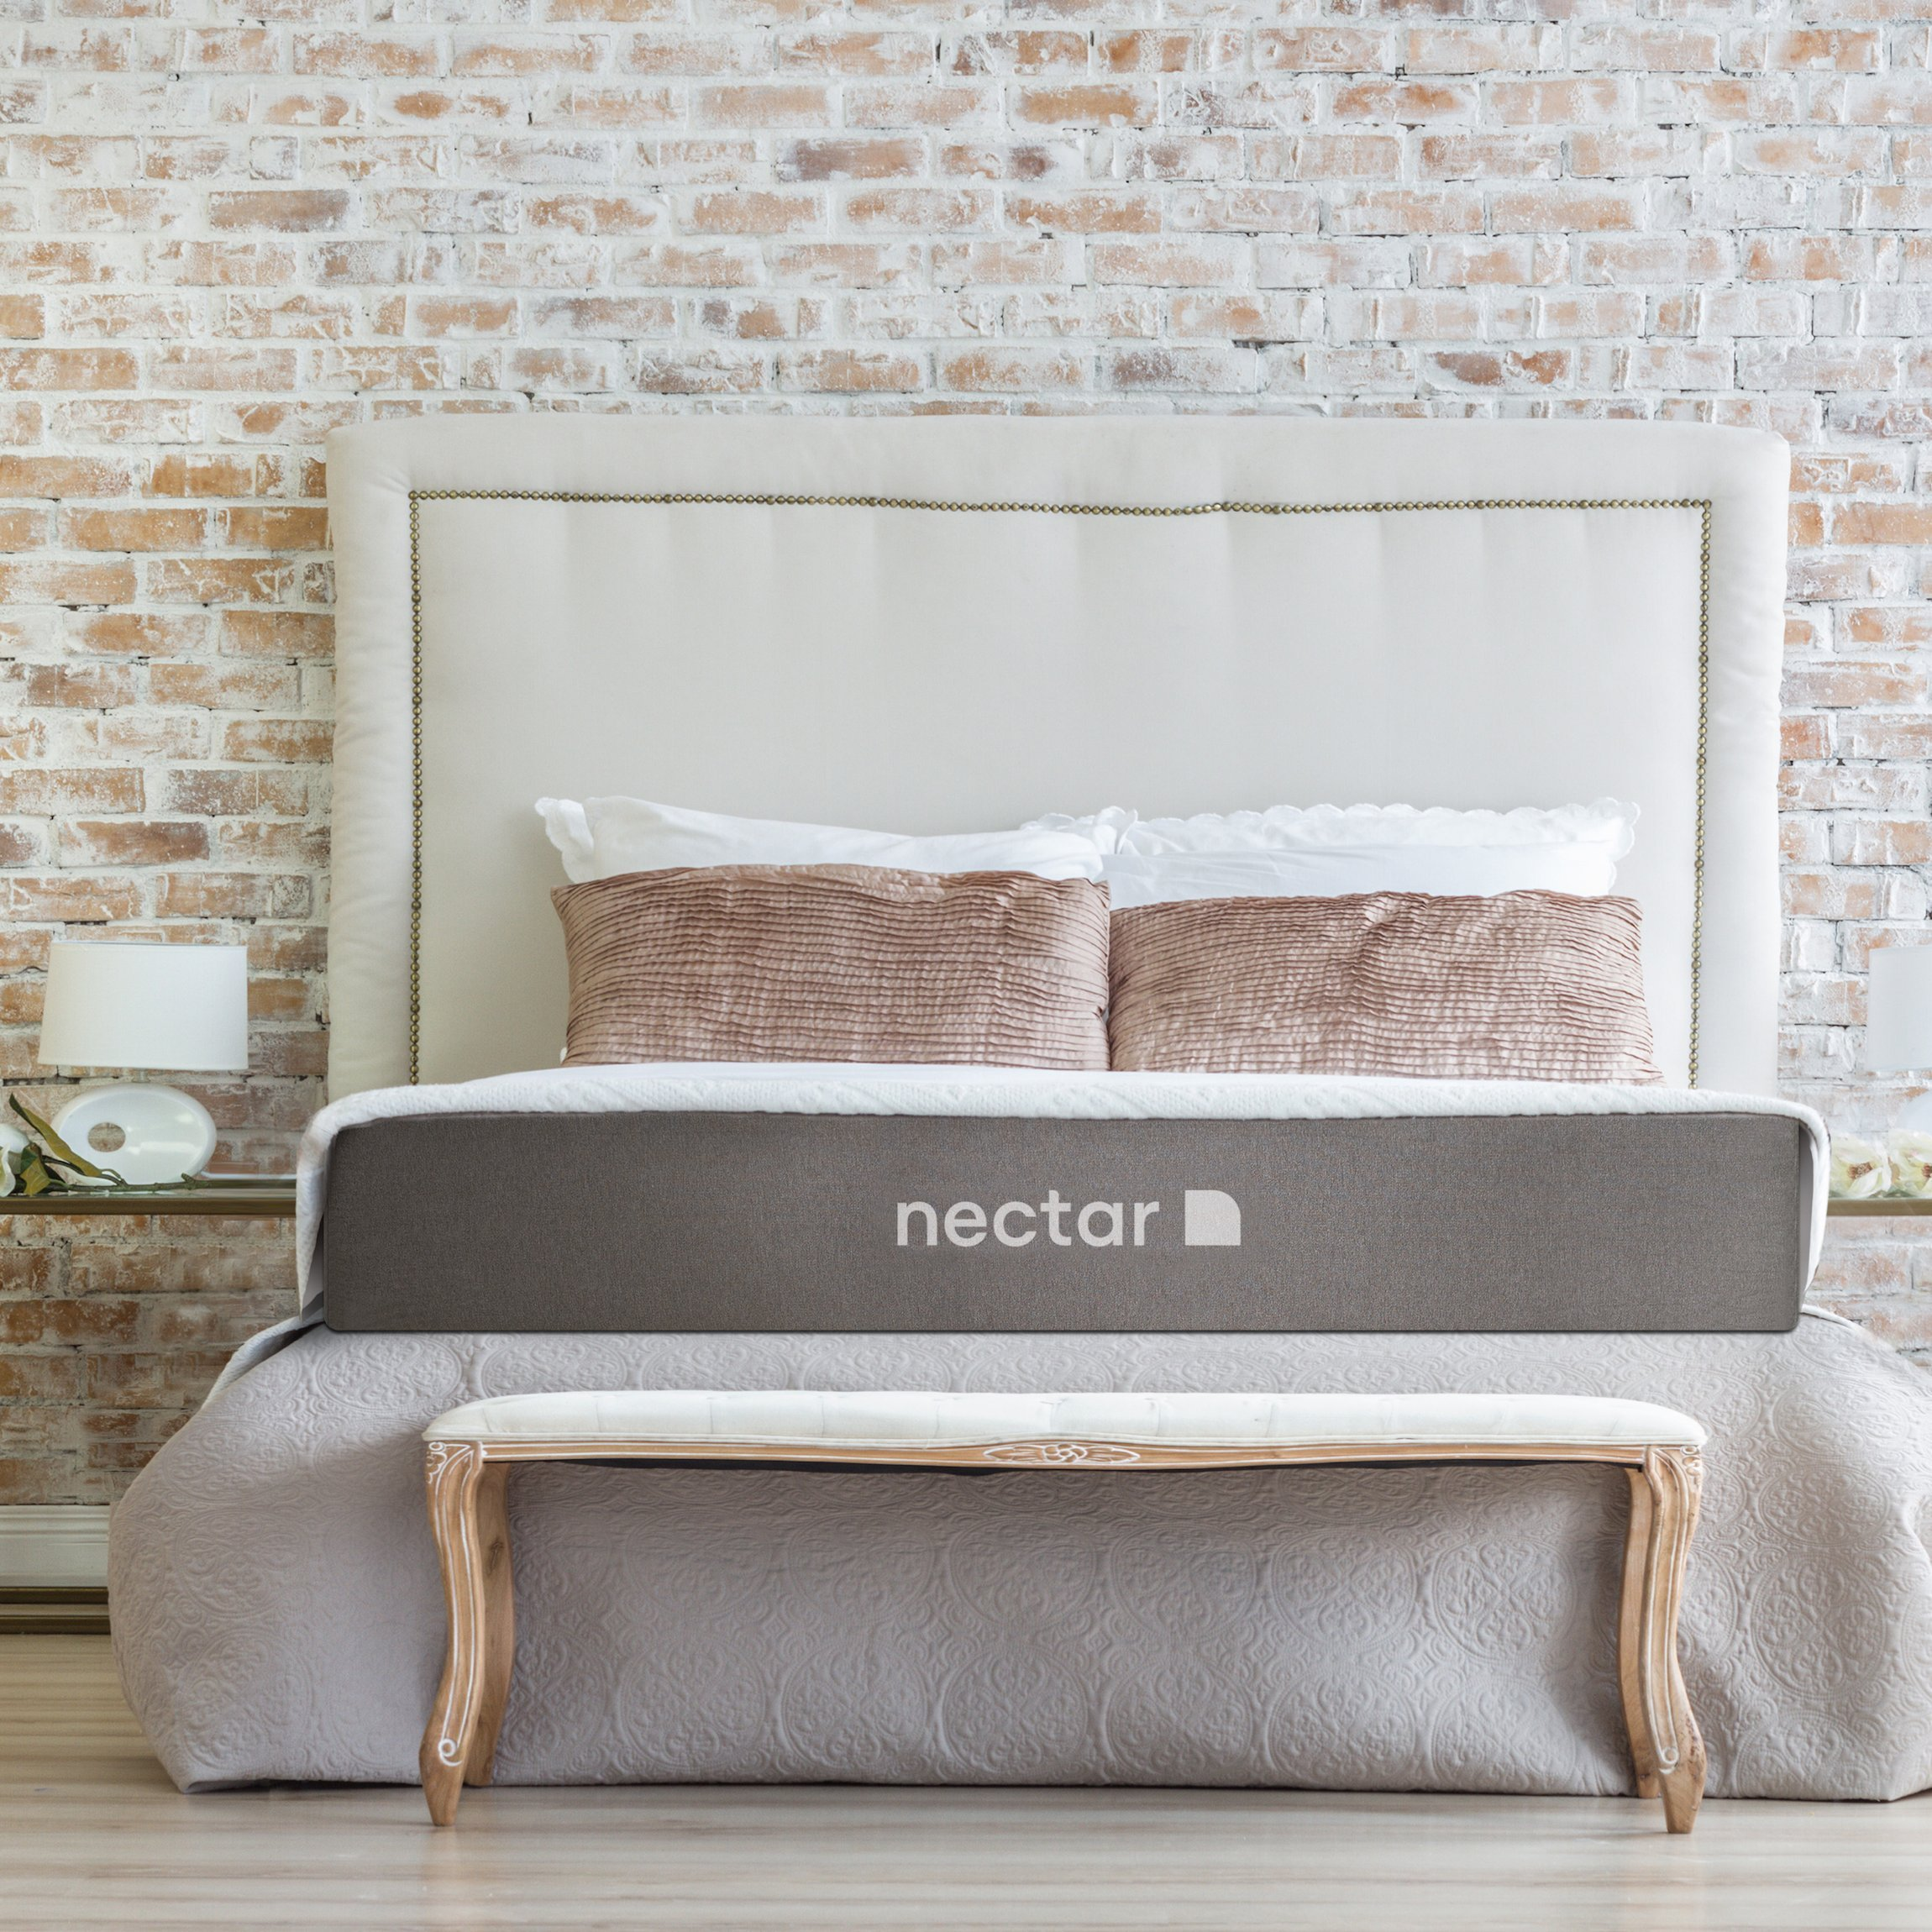 NECTAR Twin Mattress + 2 Free Pillows - Gel Memory Foam - CertiPUR-US Certified - 180 Night Home Trial - Forever Warranty